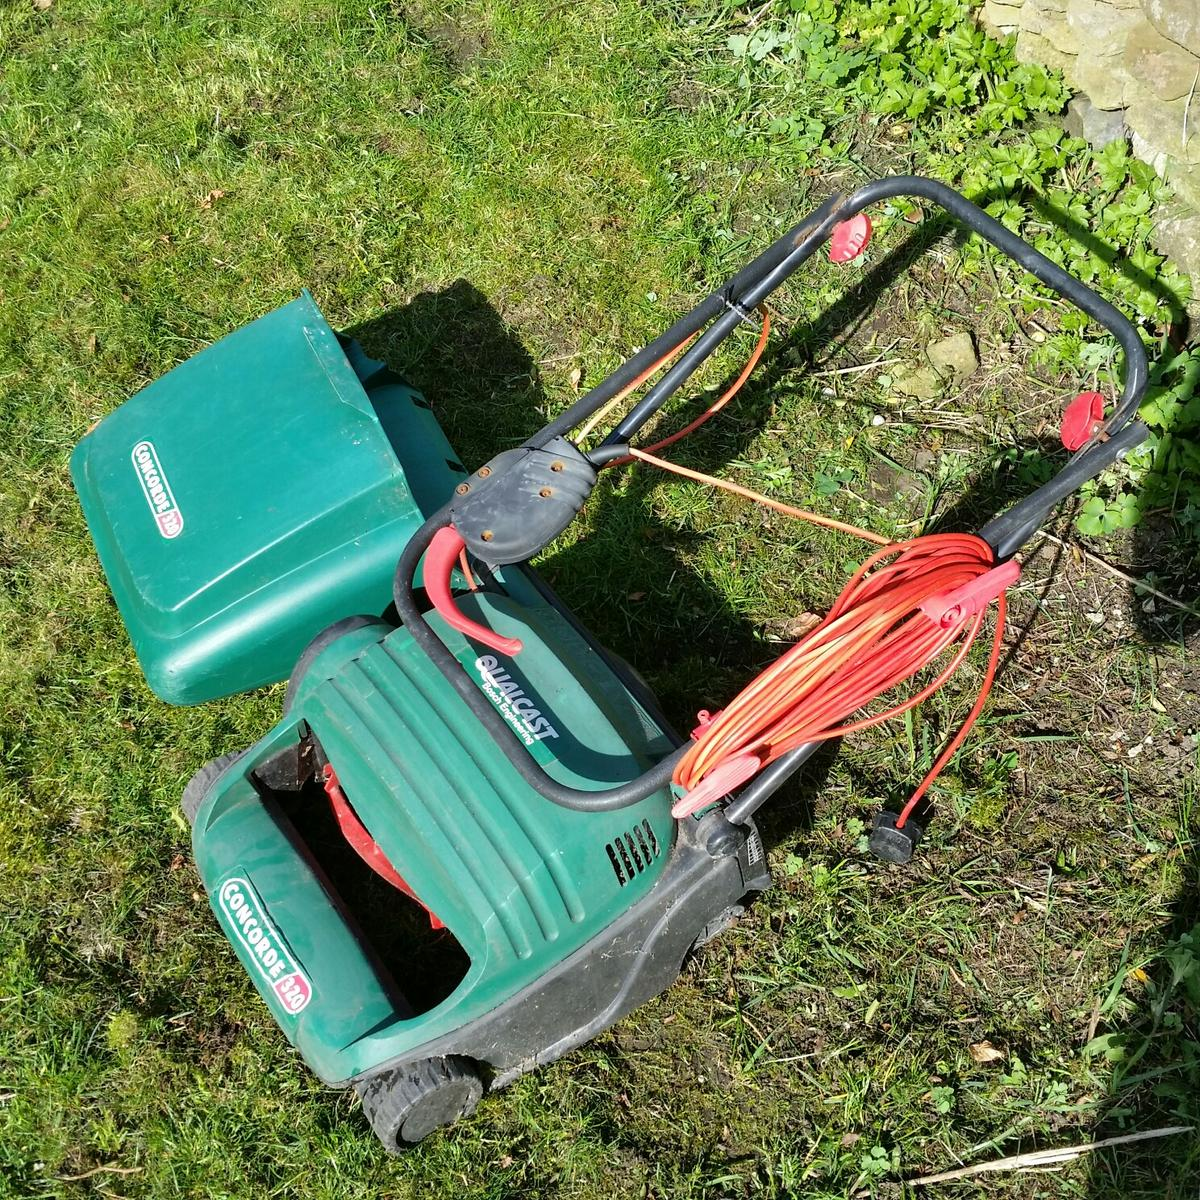 Electric Lawn Mower Sale Qualcast Concorde 320 Electric Lawn Mower In S33 Walk For 25 00